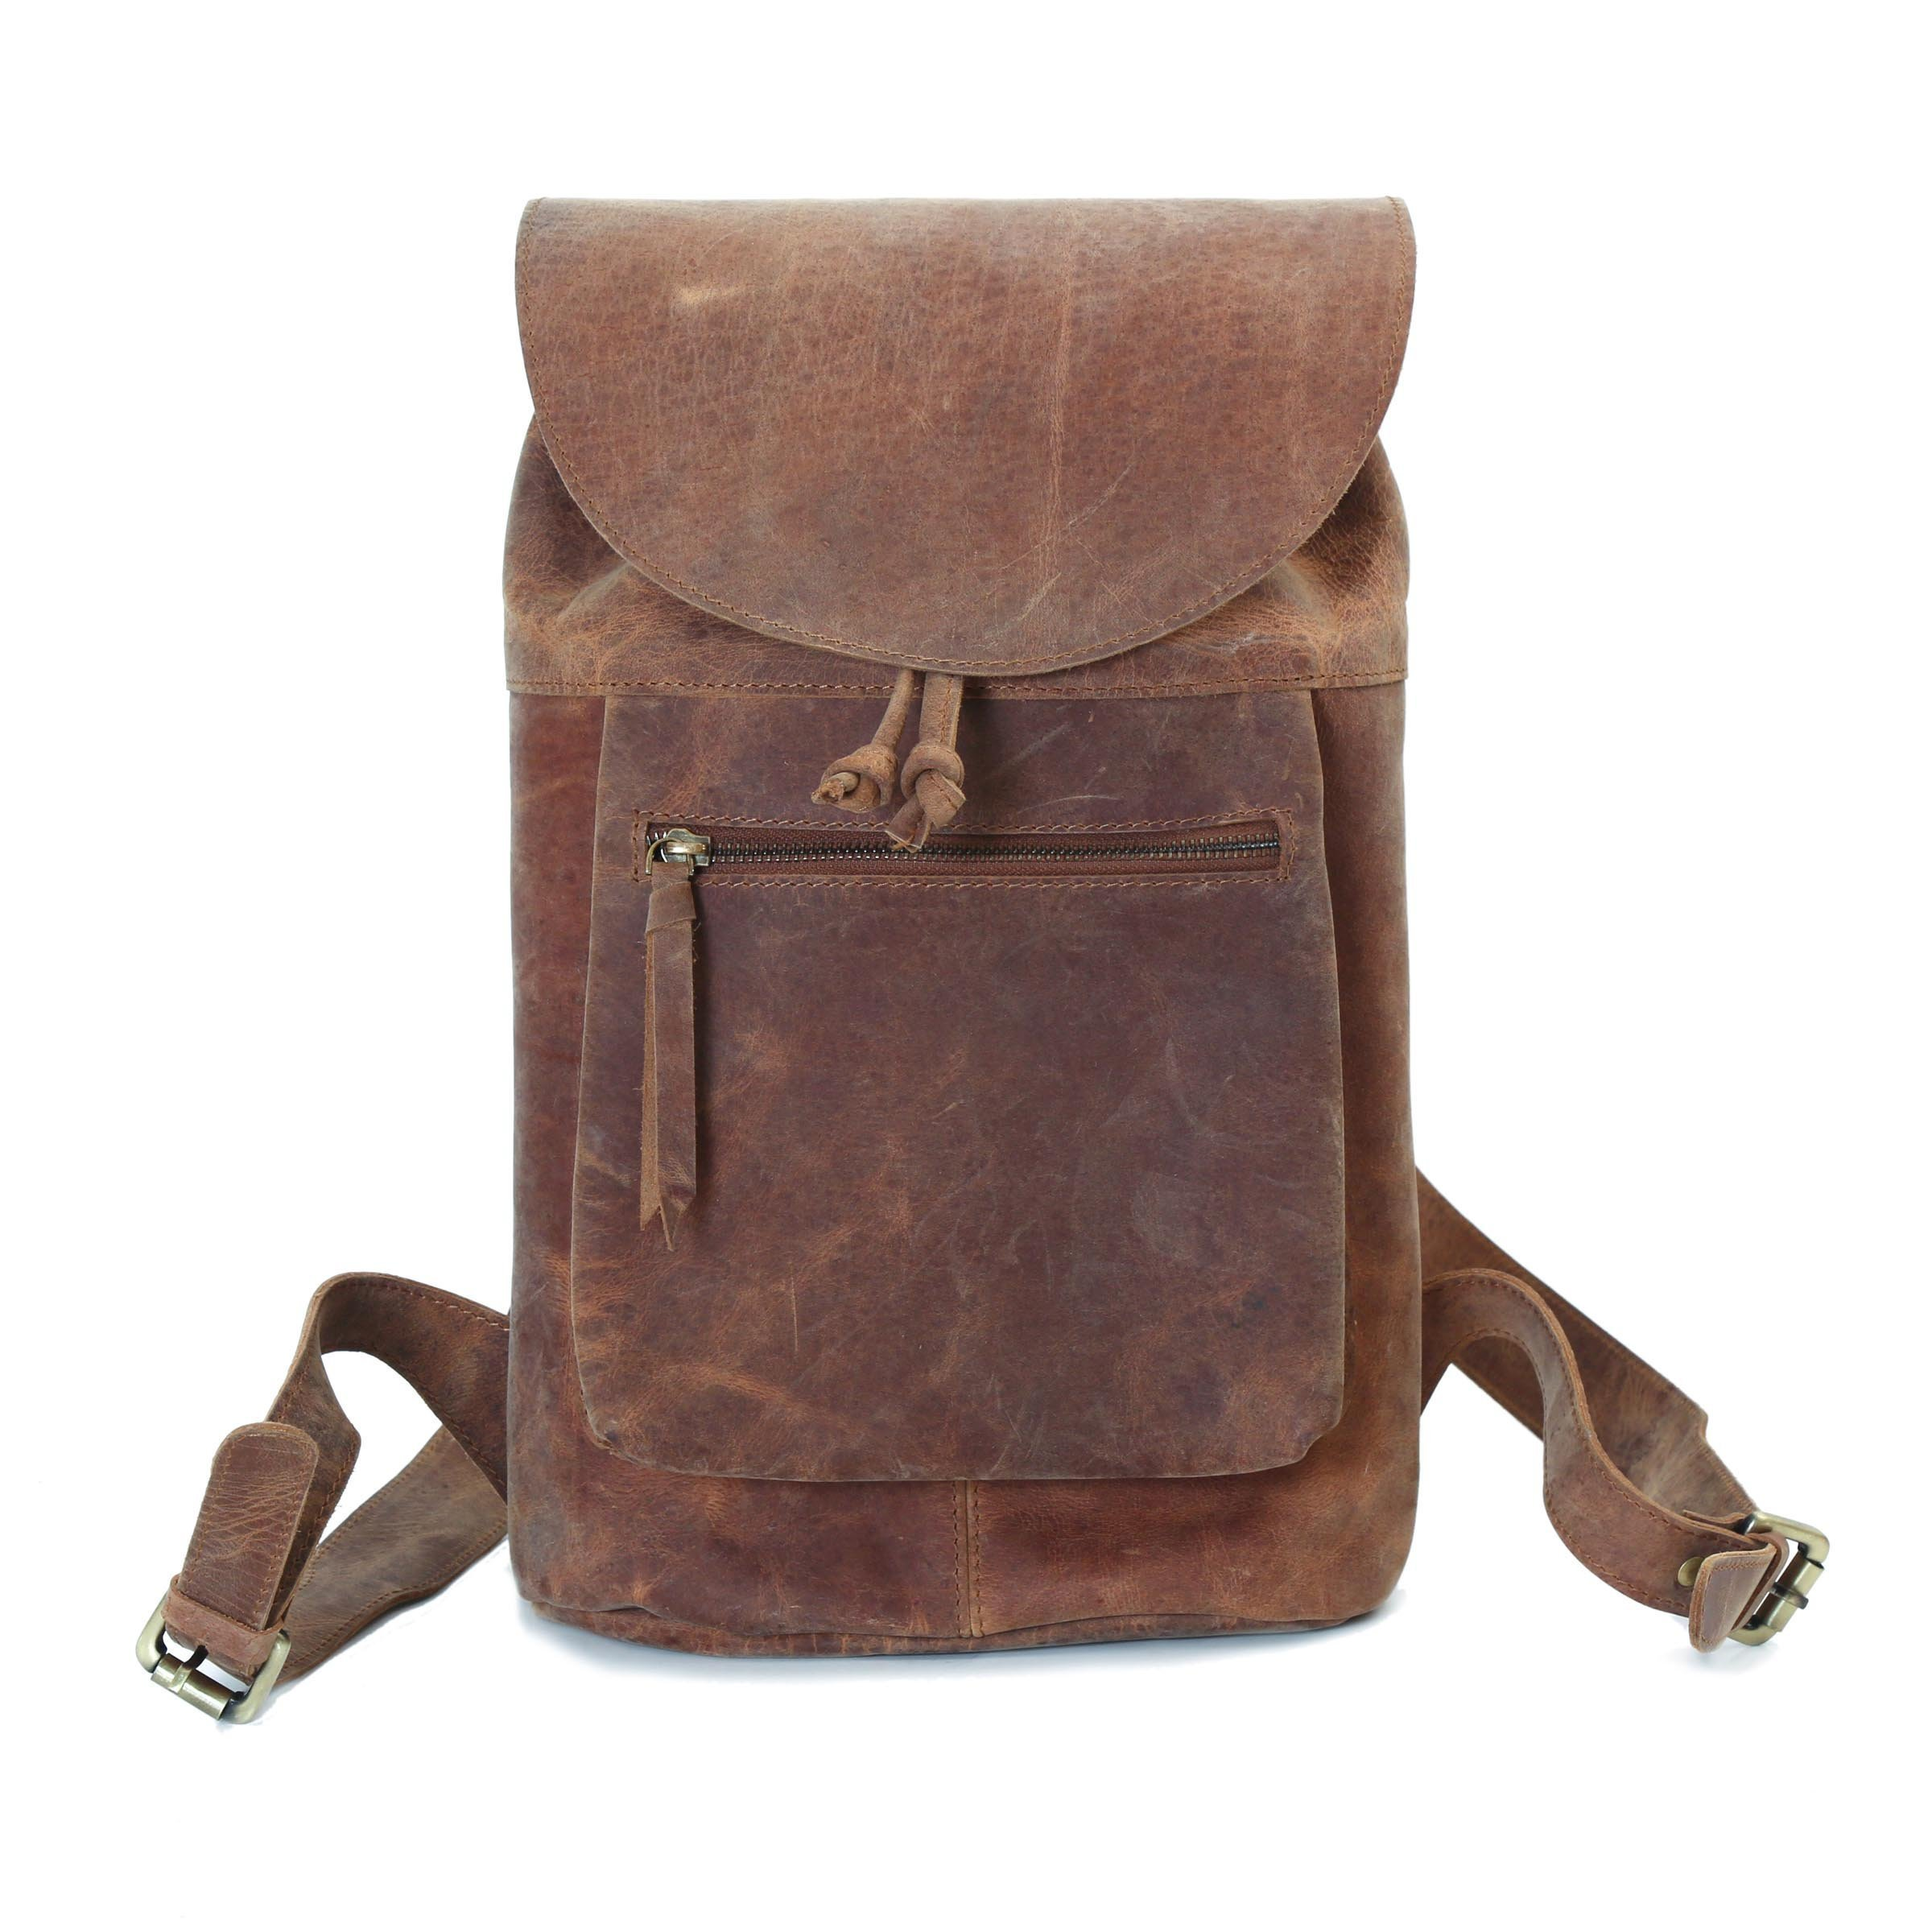 Large Distressed Brown Top Grain Leather Backpack Bag for Women with Flap and Drawstring Cinch Closure